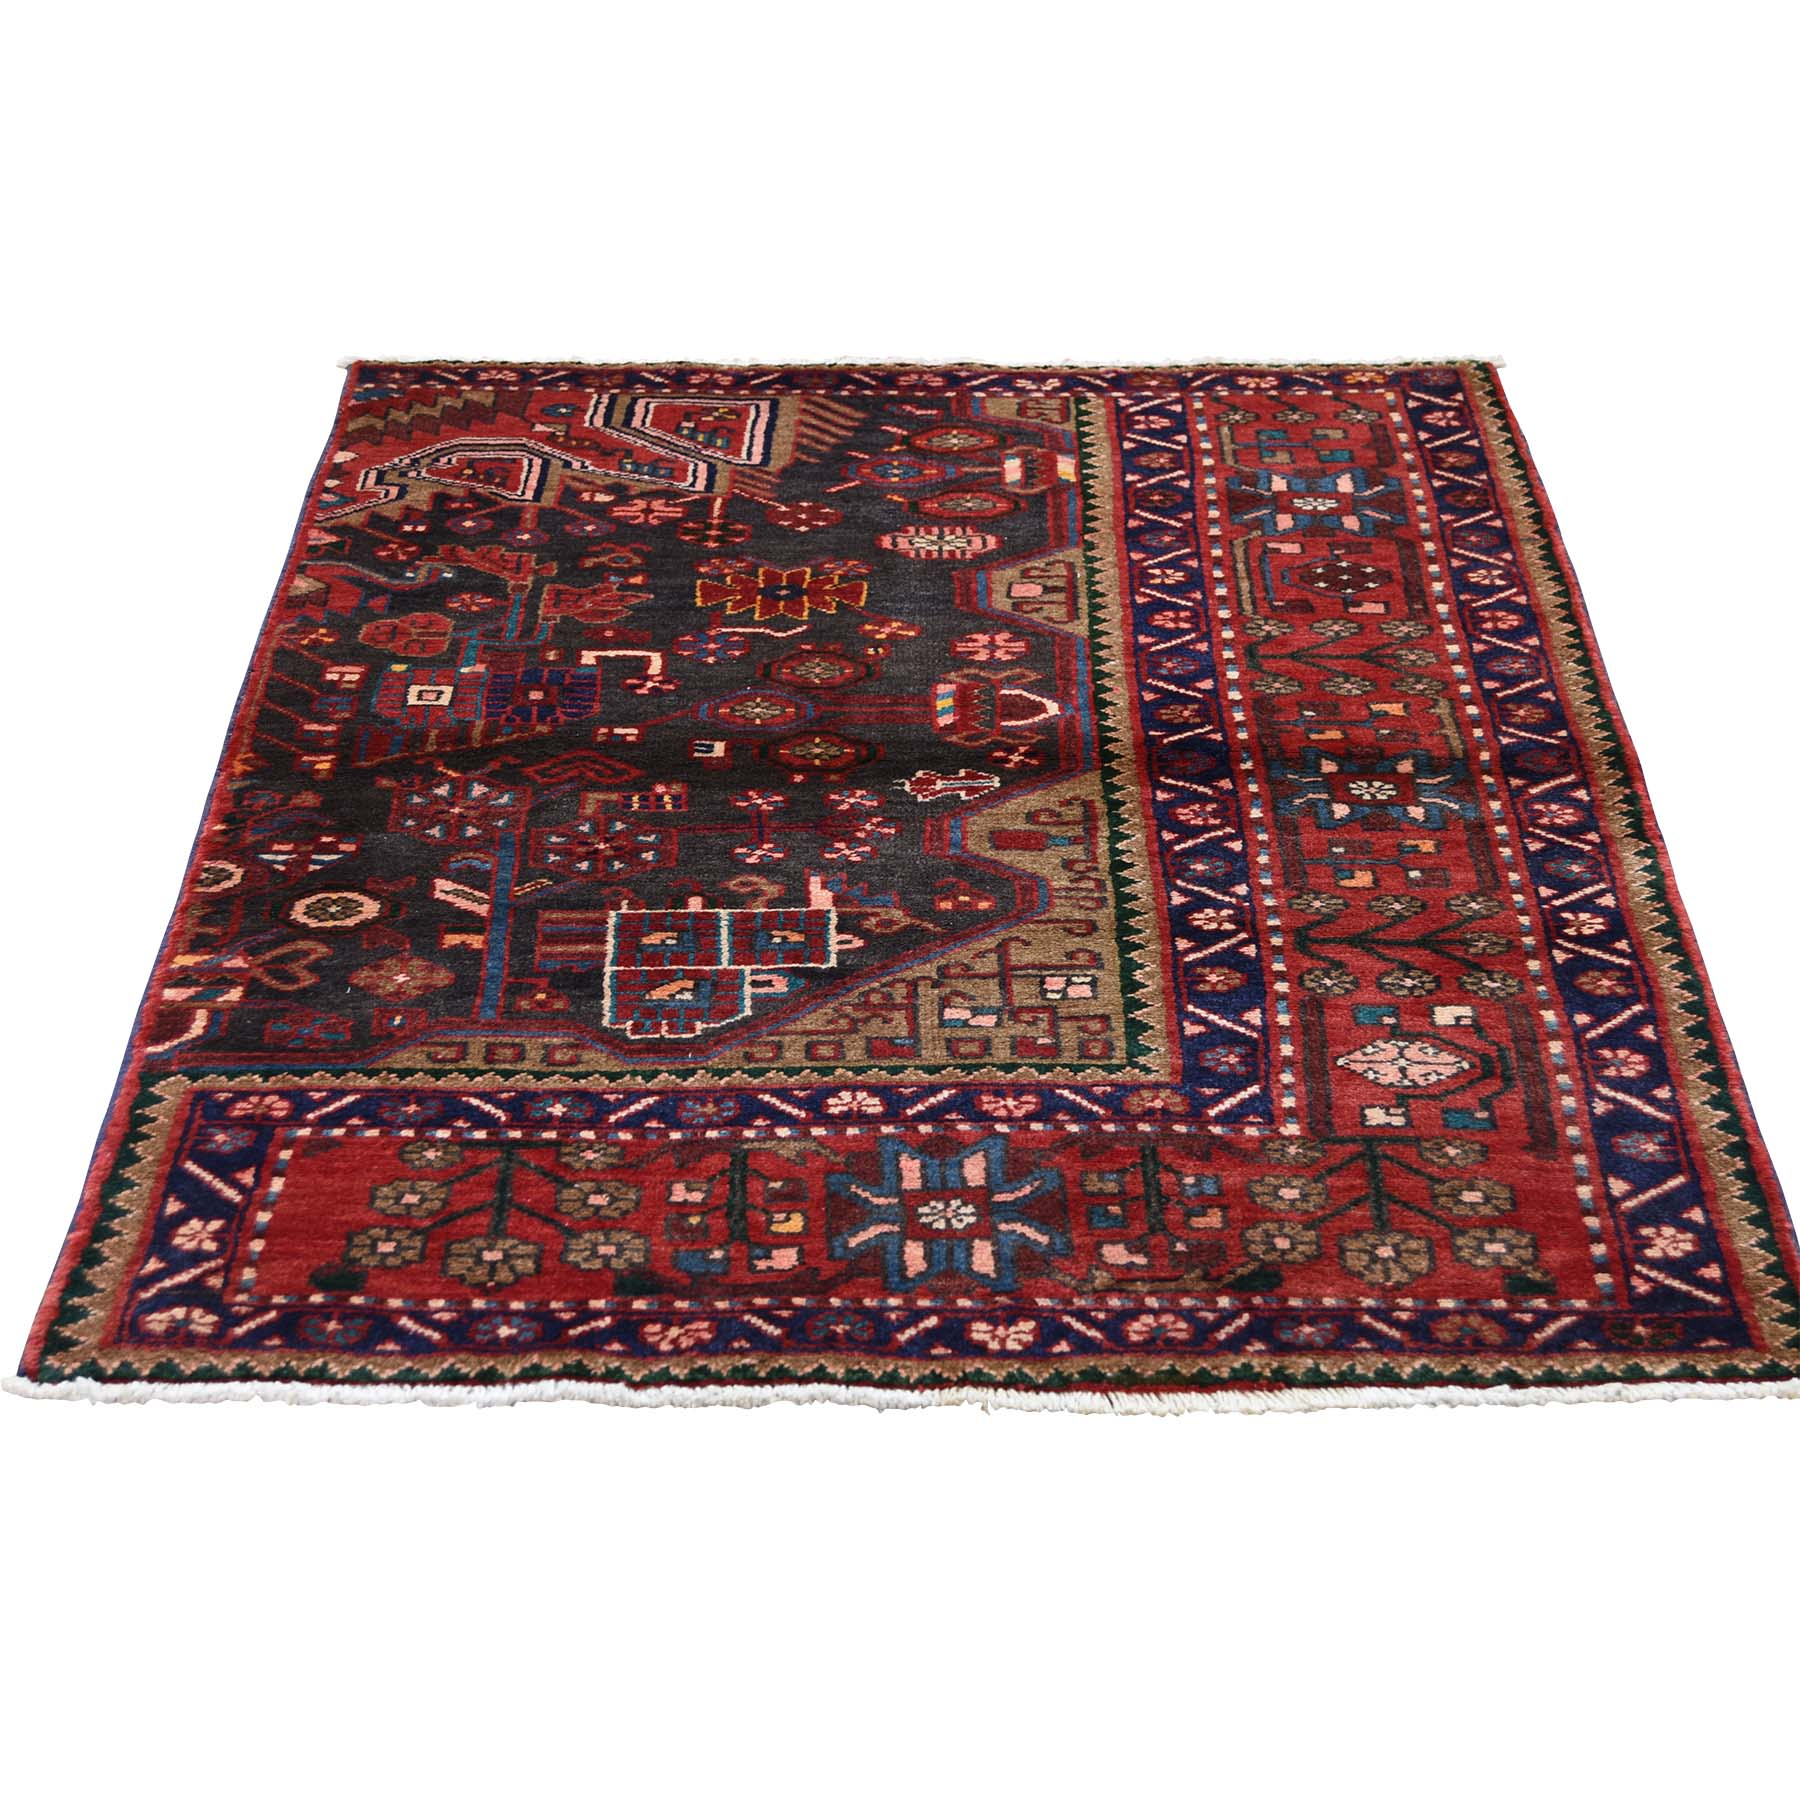 "3'6""X4'10"" Vintage Persian Nahavand Sampler Pure Wool Hand-Knotted Oriental Rug moadddee"